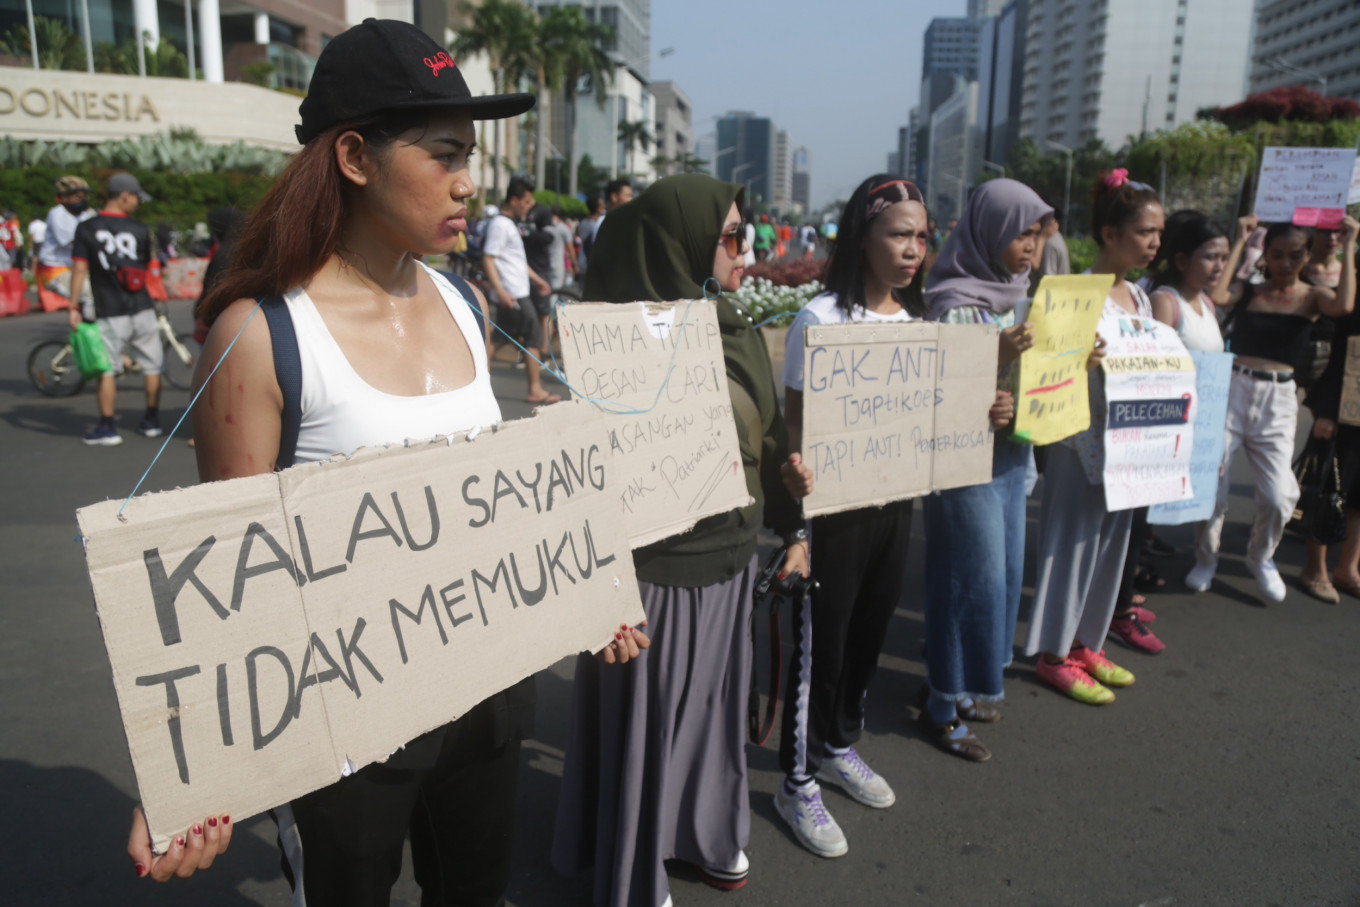 Finding Indonesia's everyday heroes and marking the week of International Women's Day